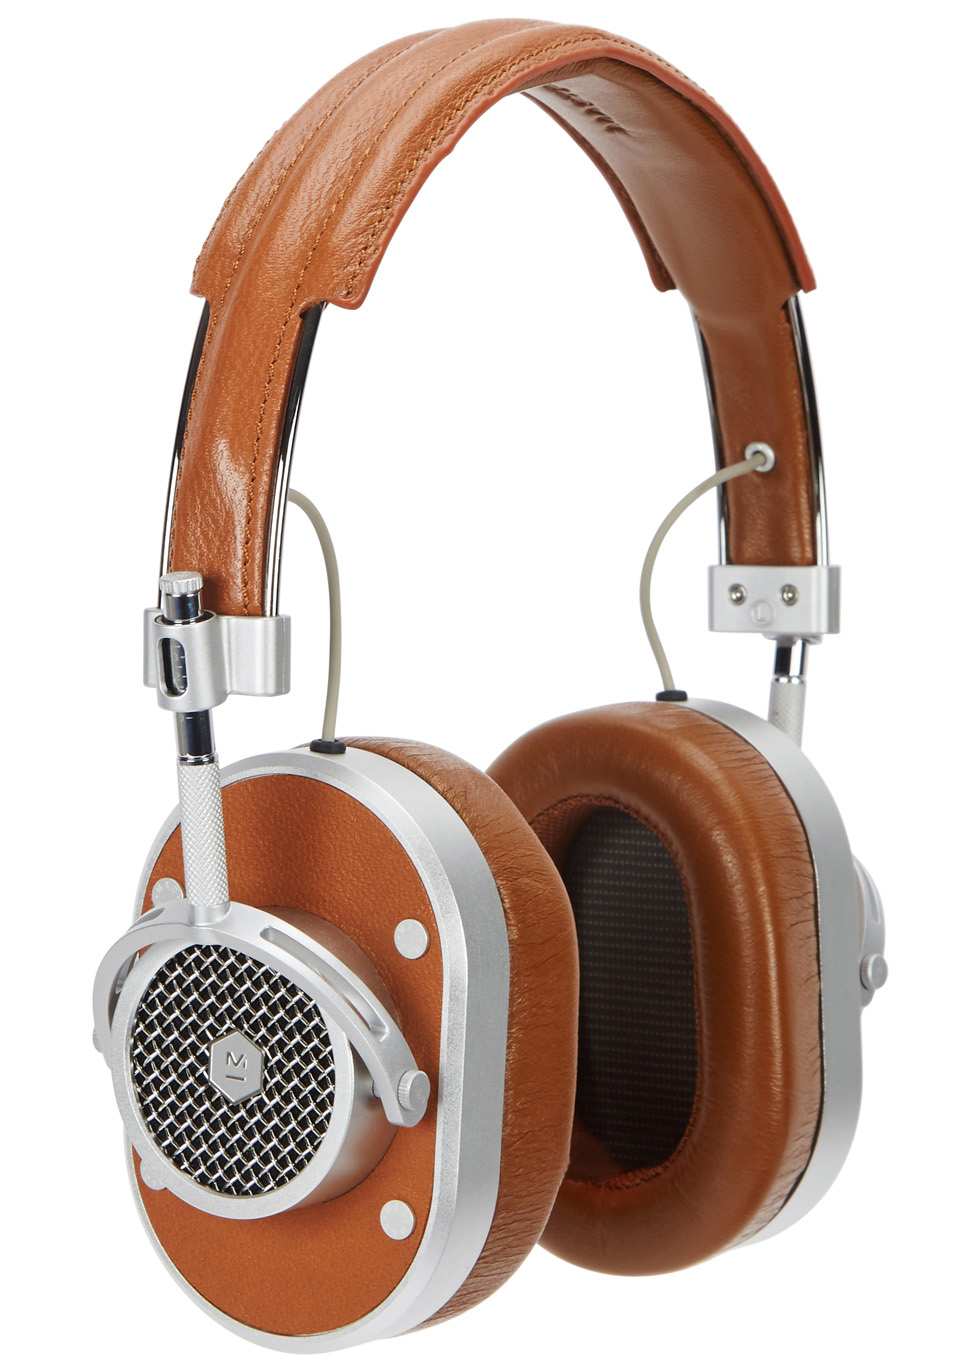 MH40 brown aluminium headphones - Master & Dynamic